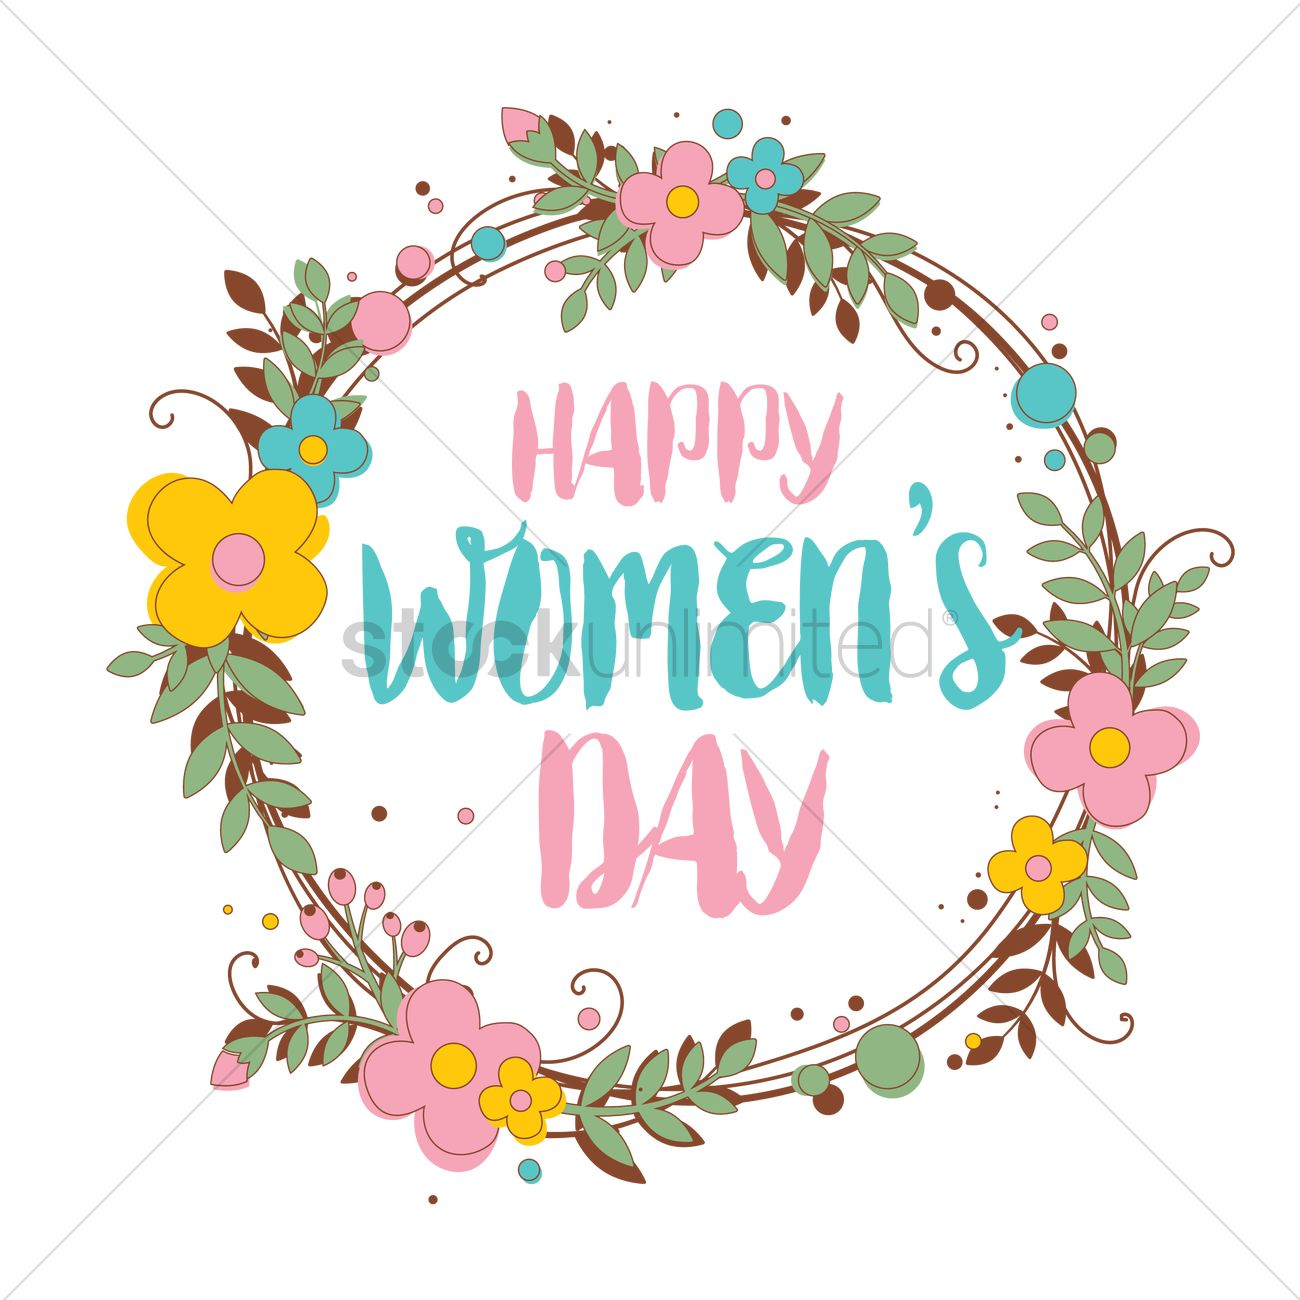 Women-s day clipart vector free download Womens day clipart 4 » Clipart Station vector free download